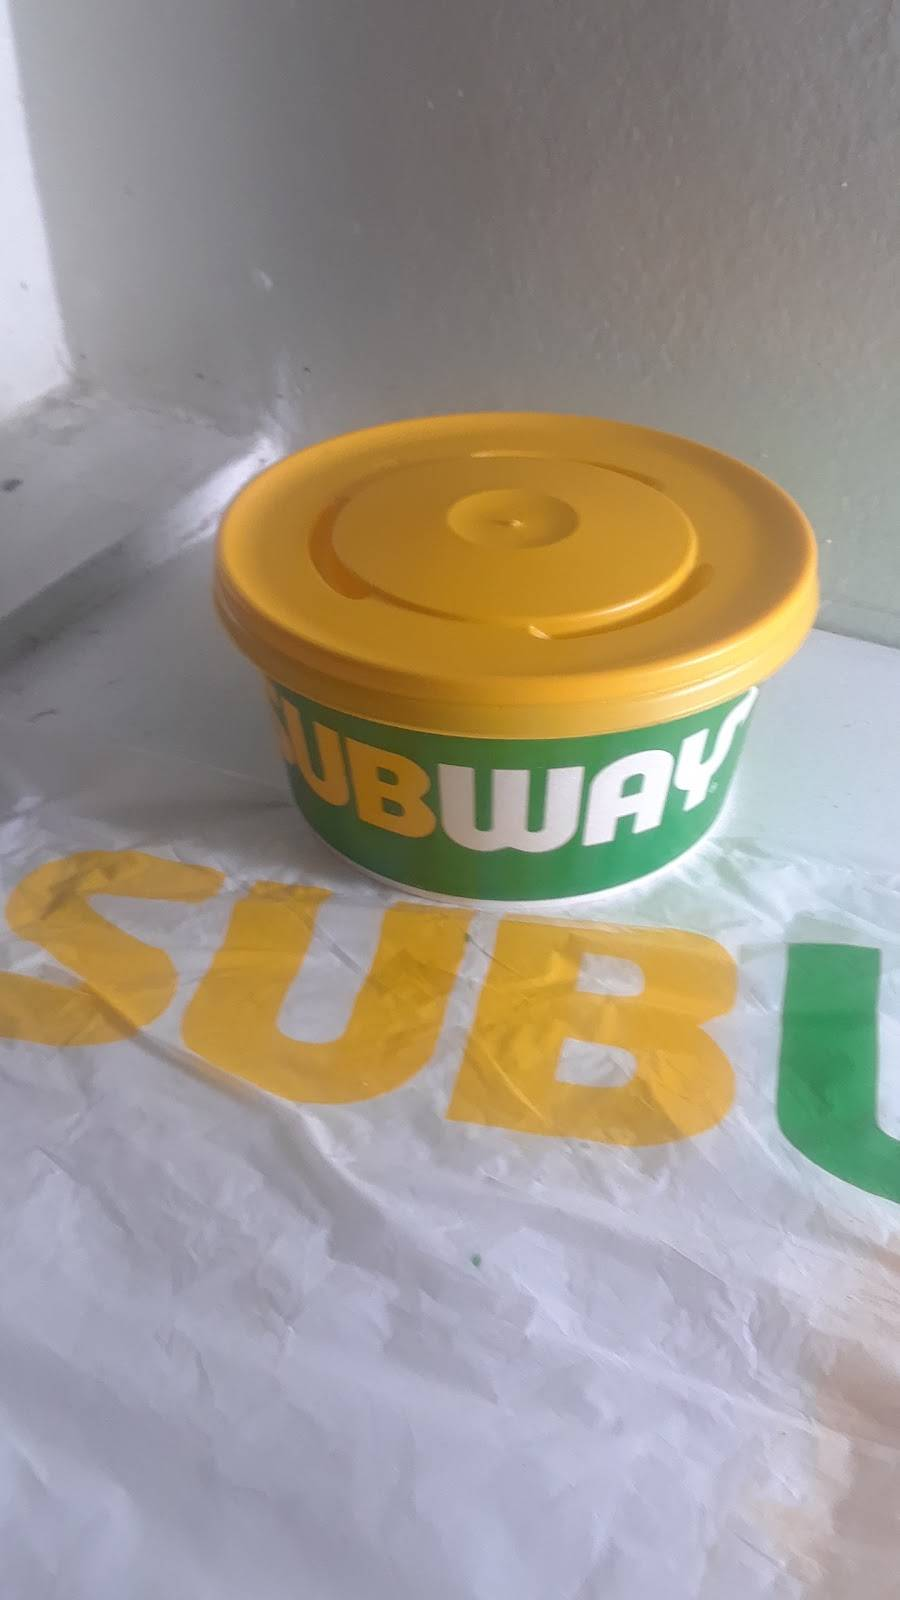 Subway   restaurant   696 St Clair Ave W, Toronto, ON M6C 1A9, Canada   4169160699 OR +1 416-916-0699